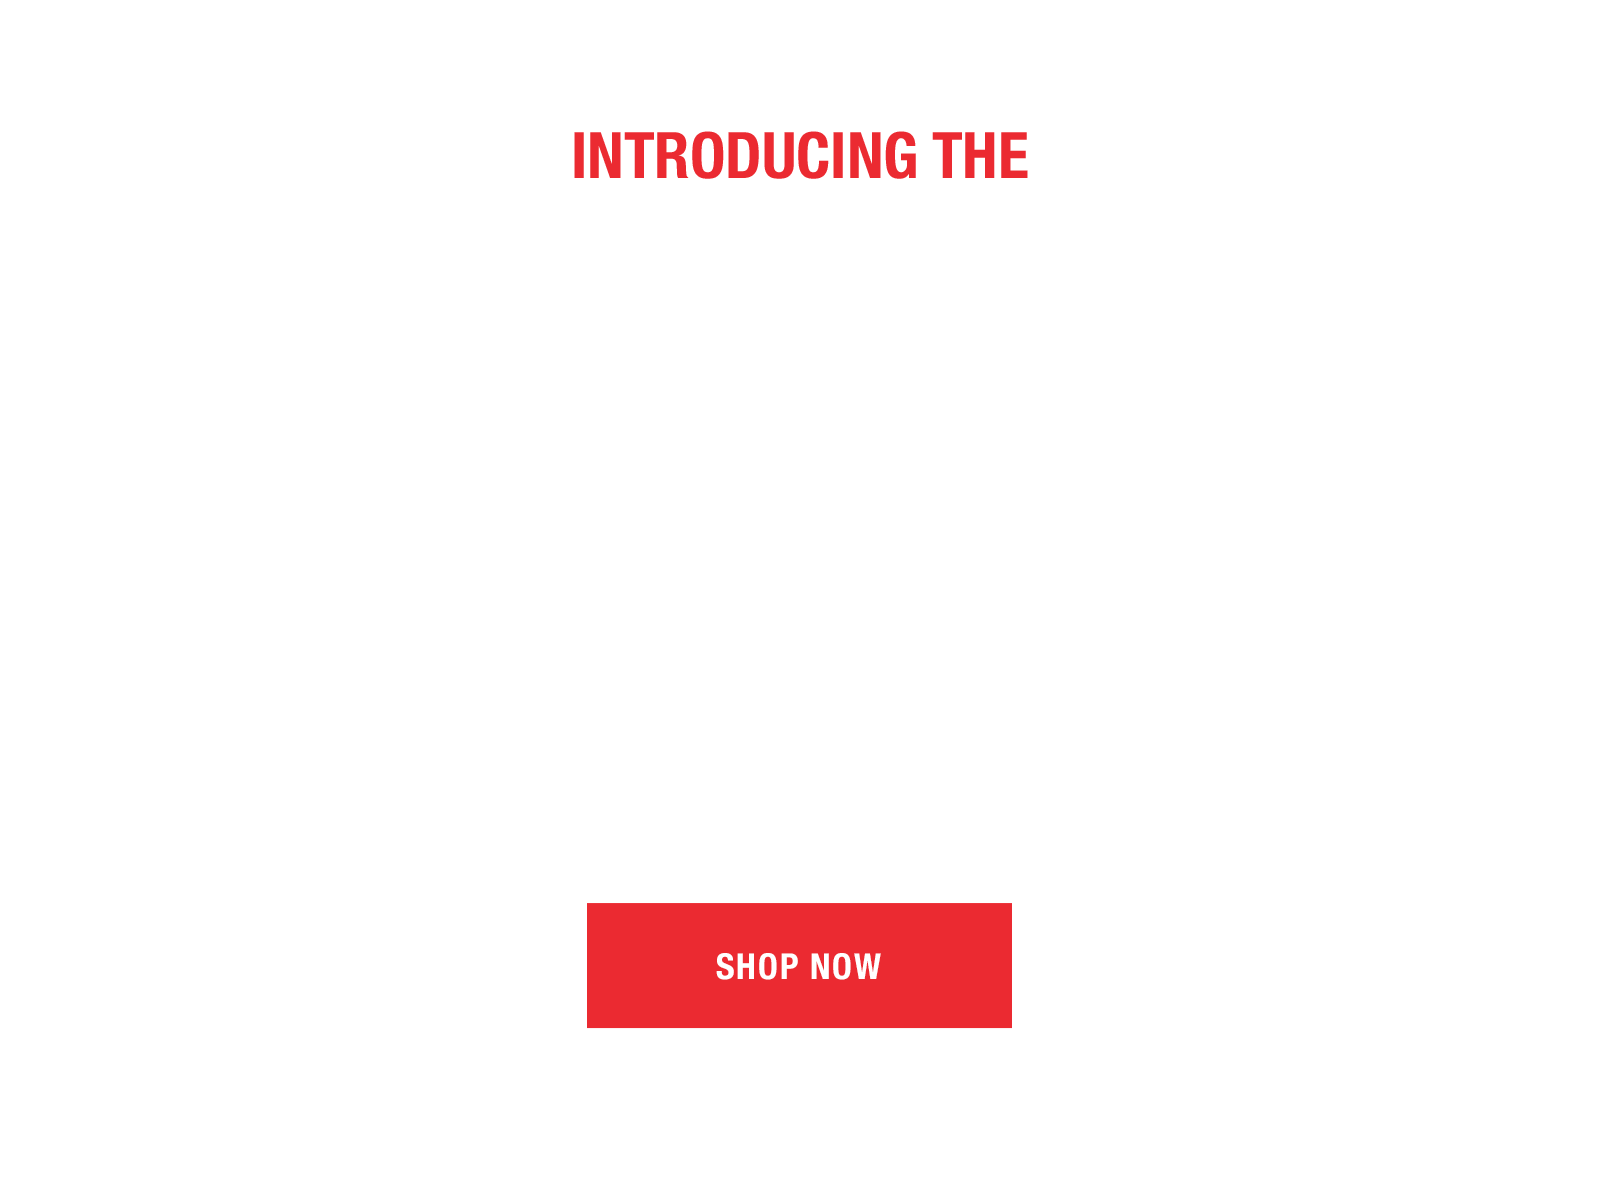 $54.95 mystery box deal plus free shipping with code FITNESSBOX